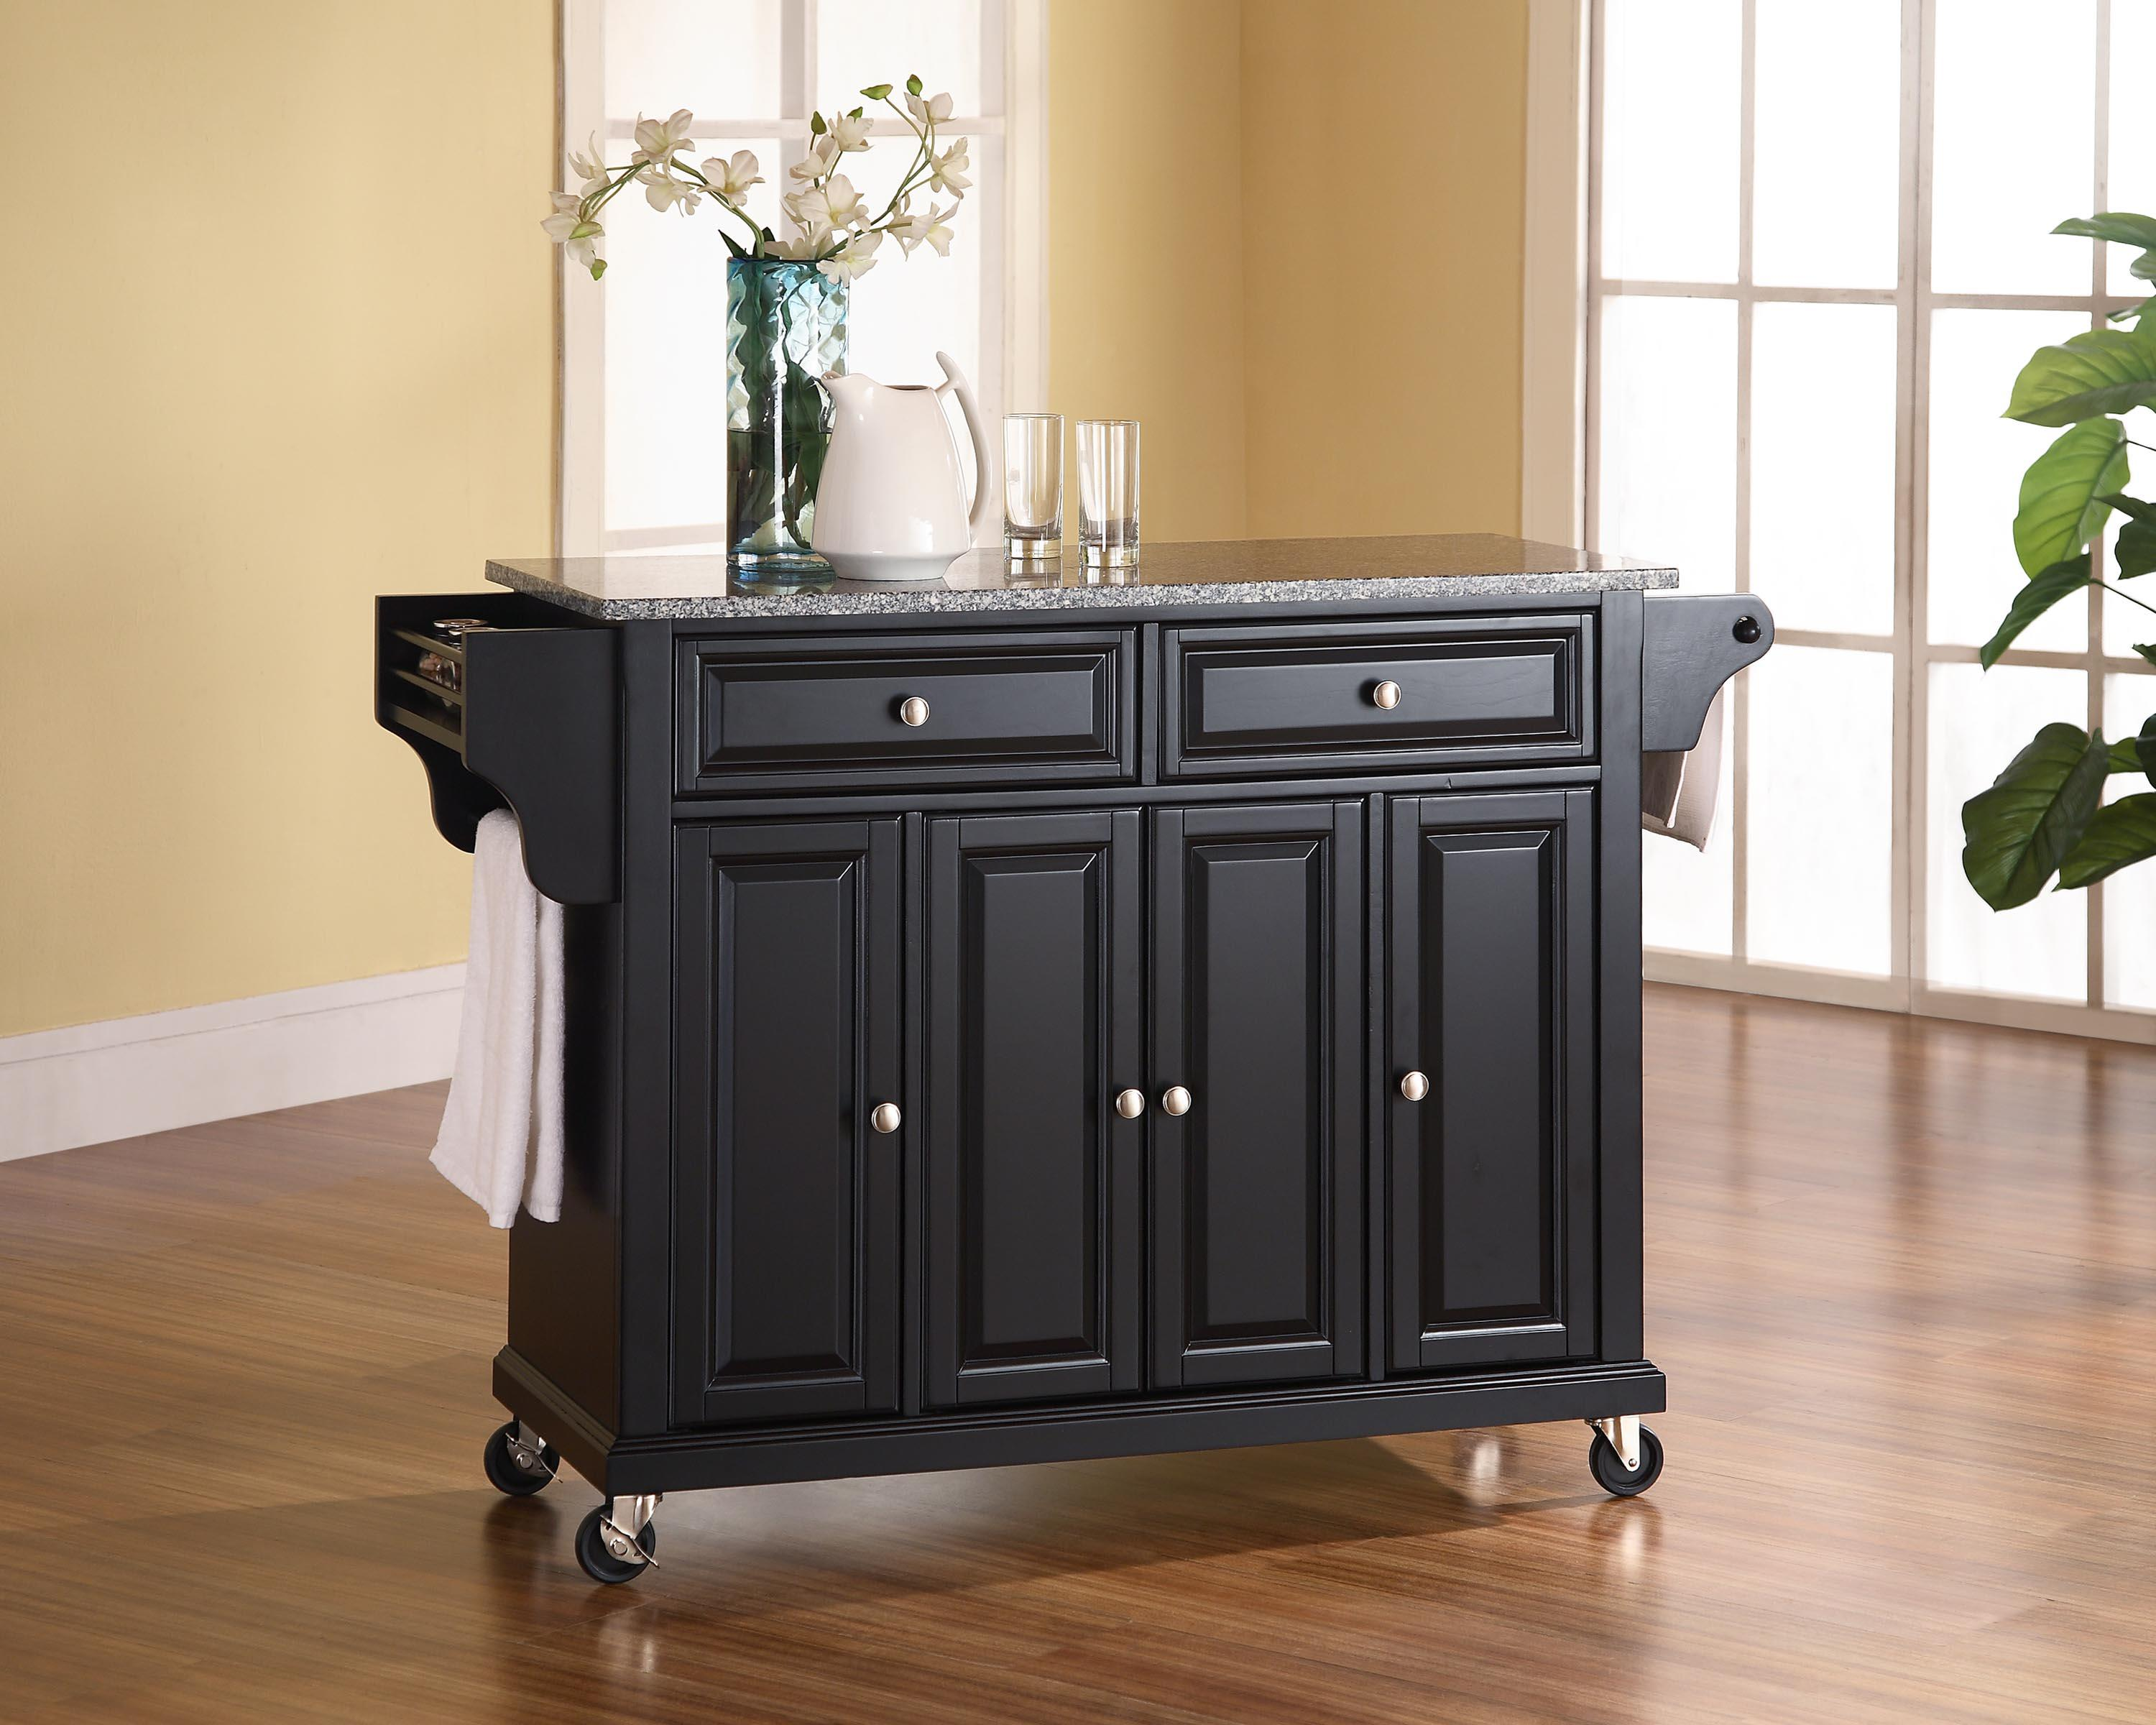 Image of: Portable Kitchen Island With Seating